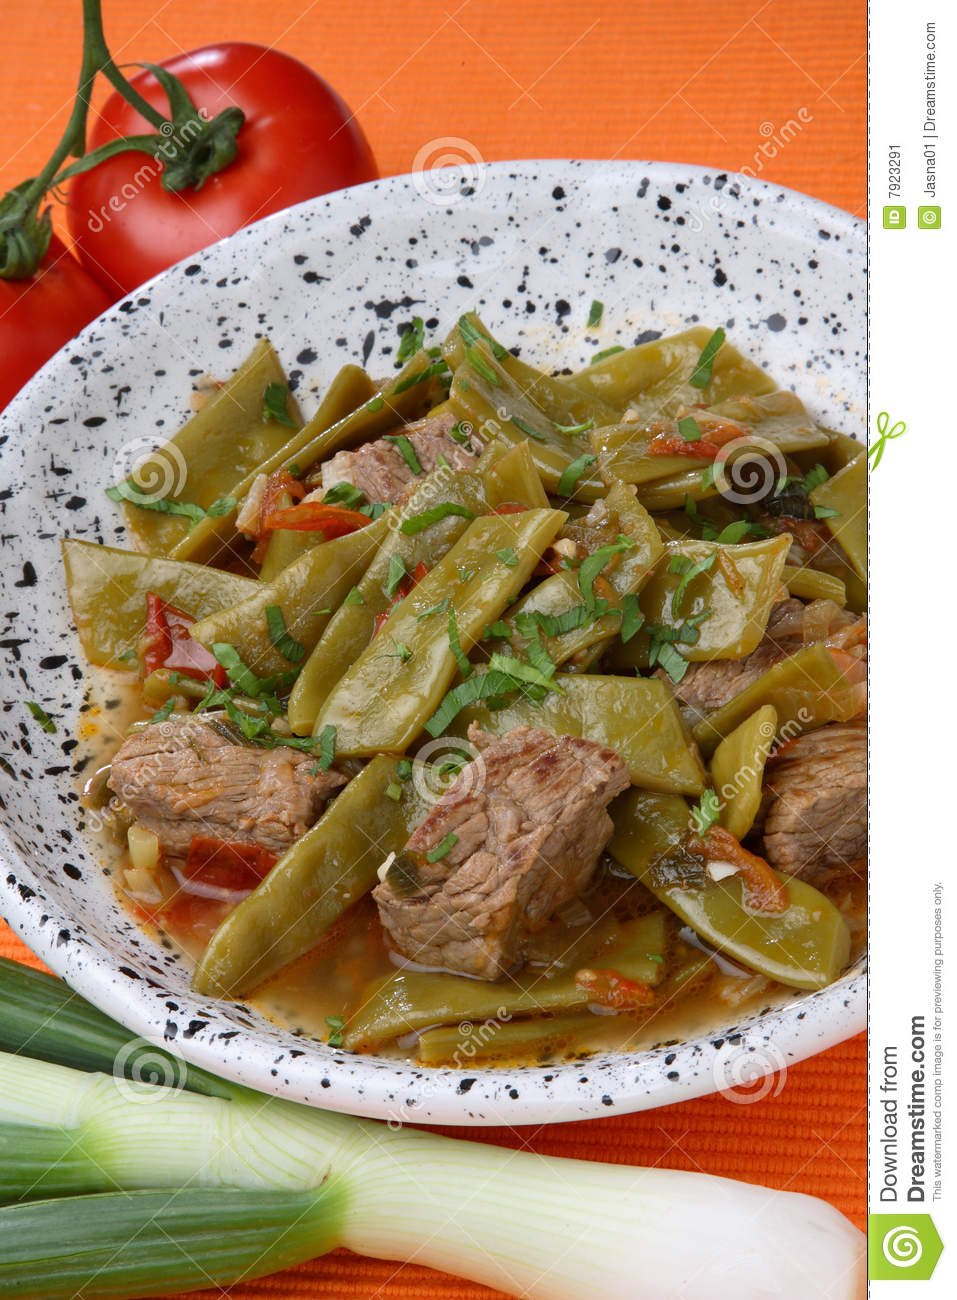 Stock Image: French beans salad with meat